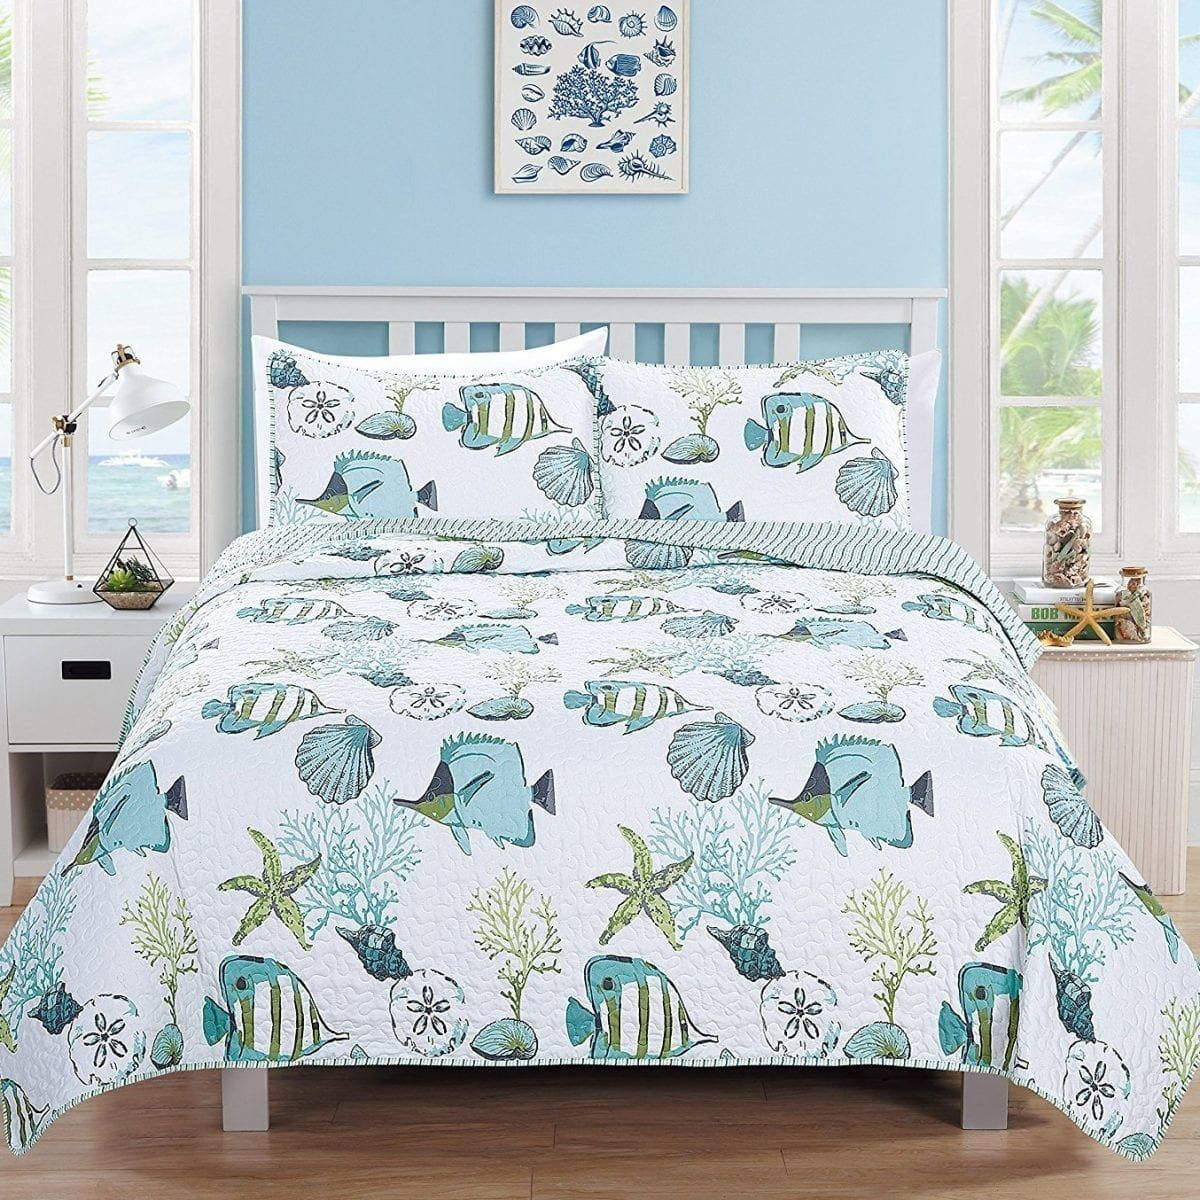 Beach Themed Bedding Sets Discover The Most Beautiful Beach